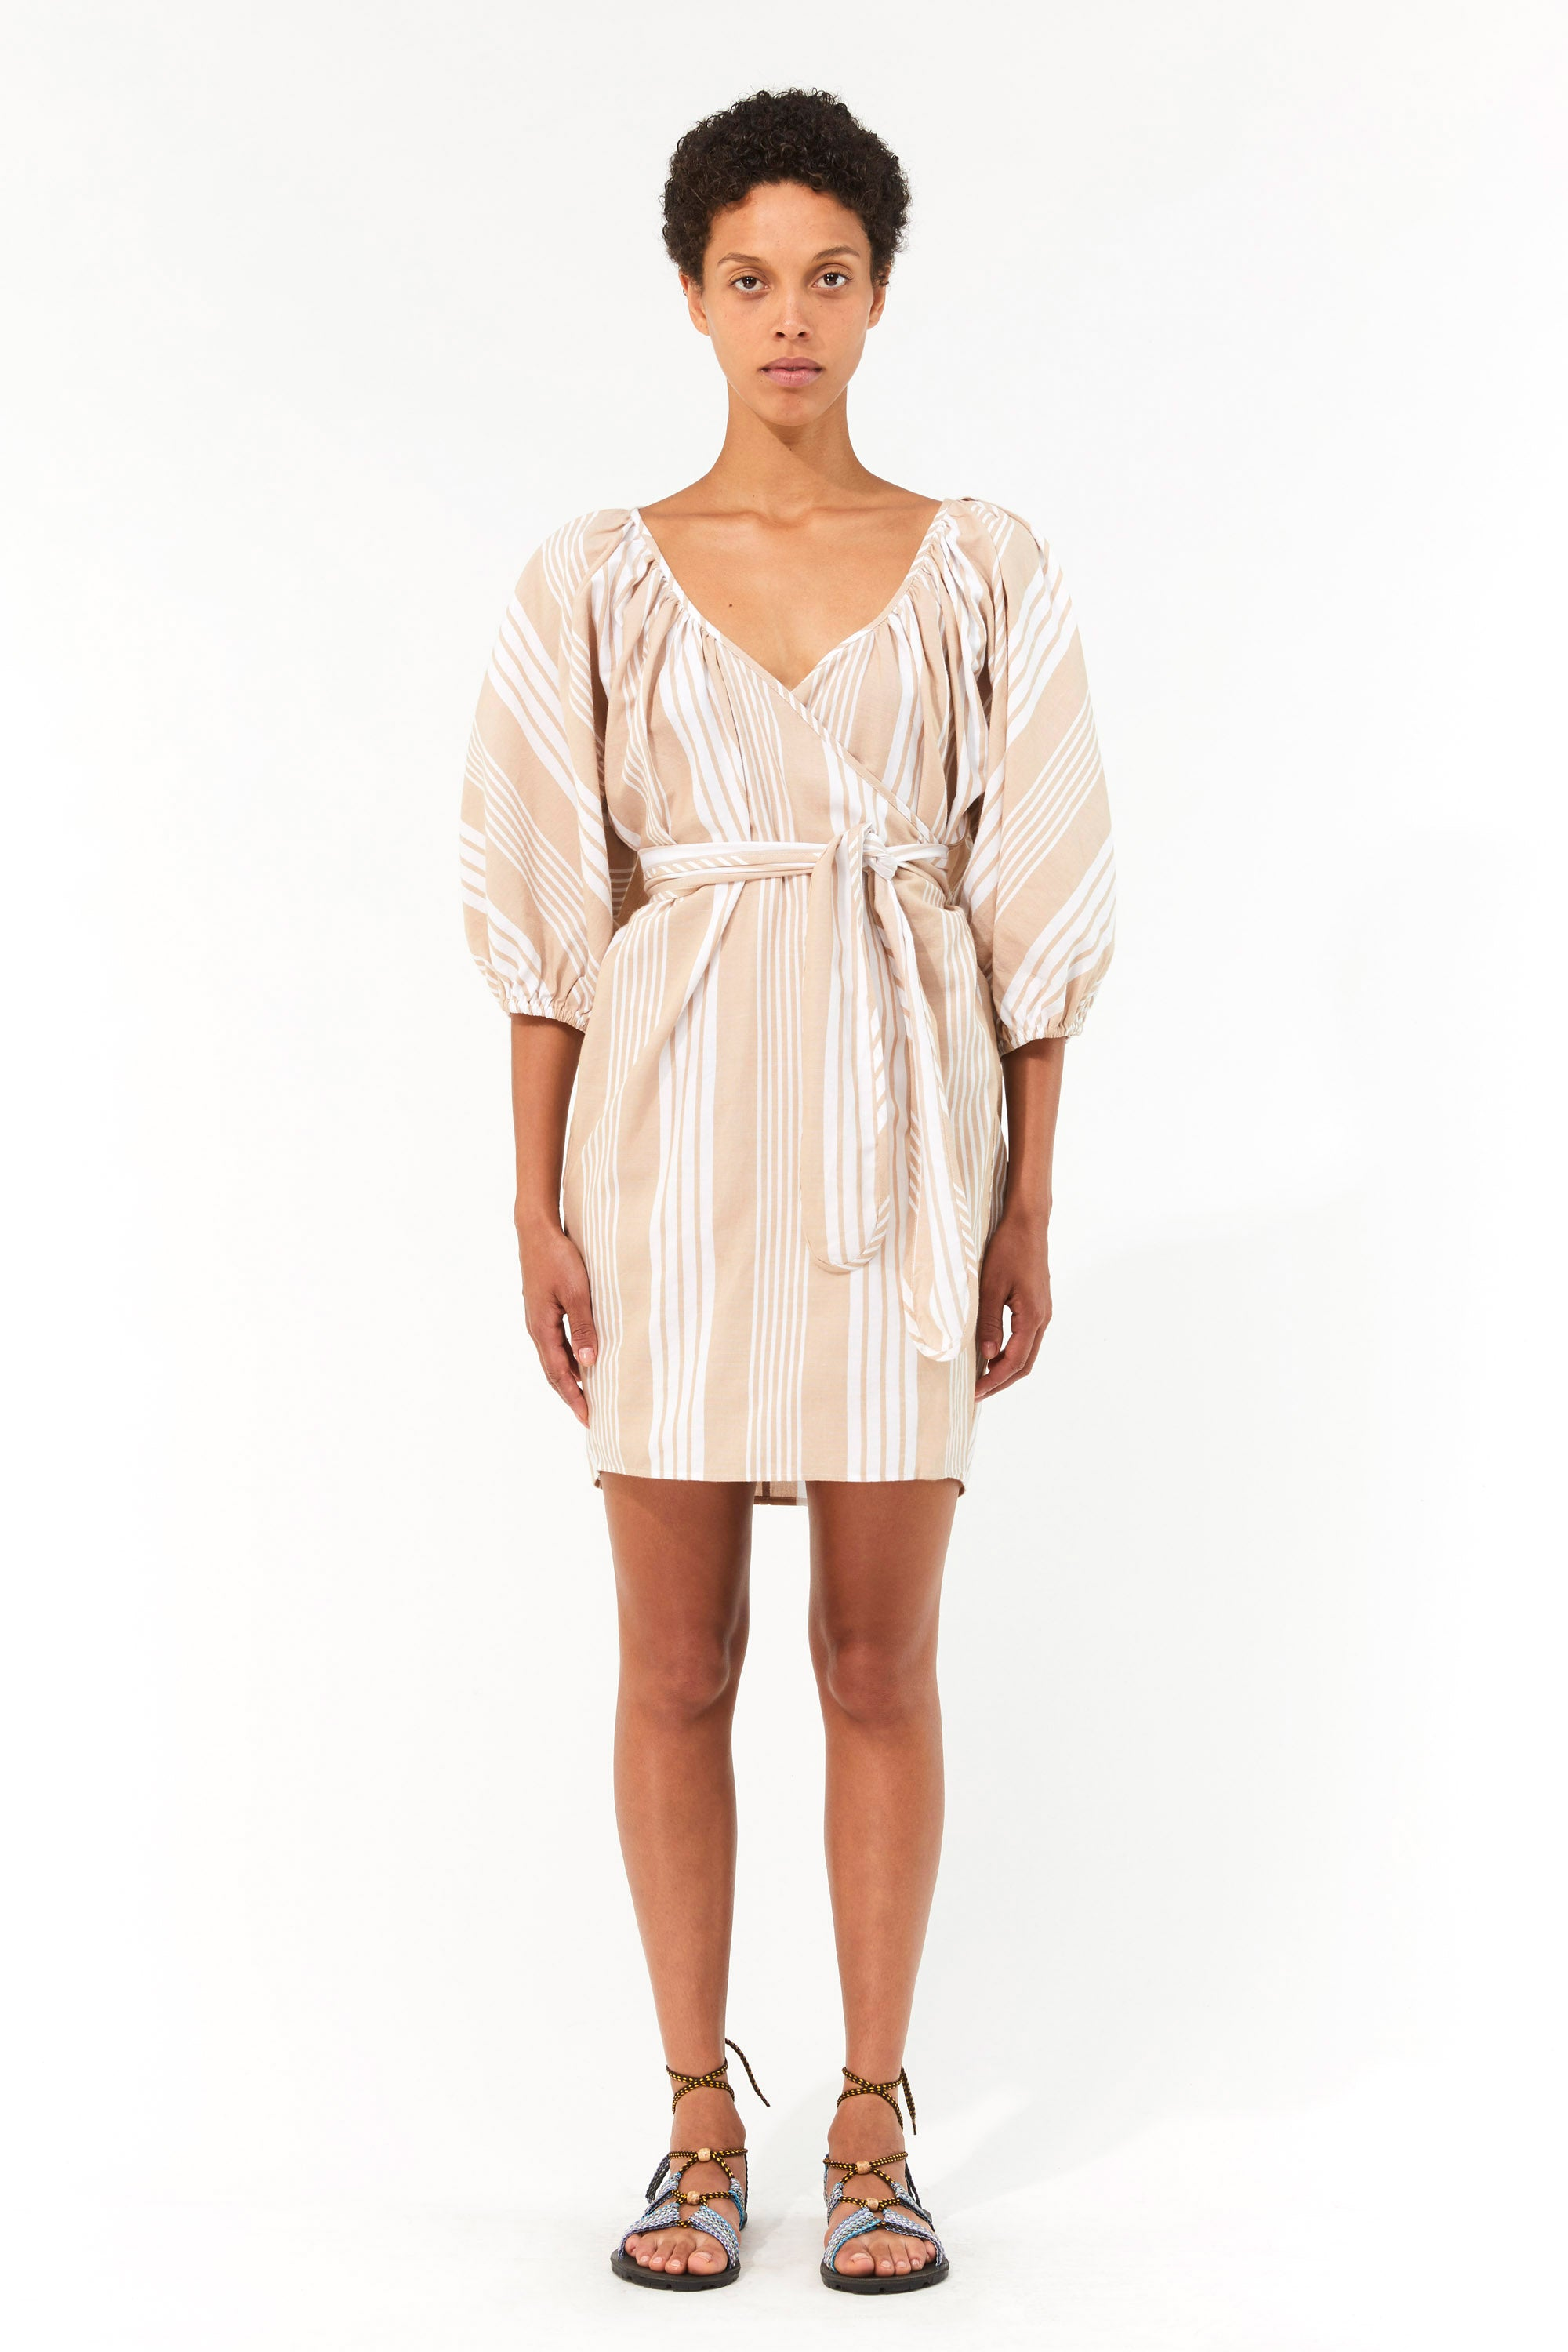 Mara Hoffman White Sand Coletta Cover Up Dress in TENCEL Lyocell and organic cotton (front)